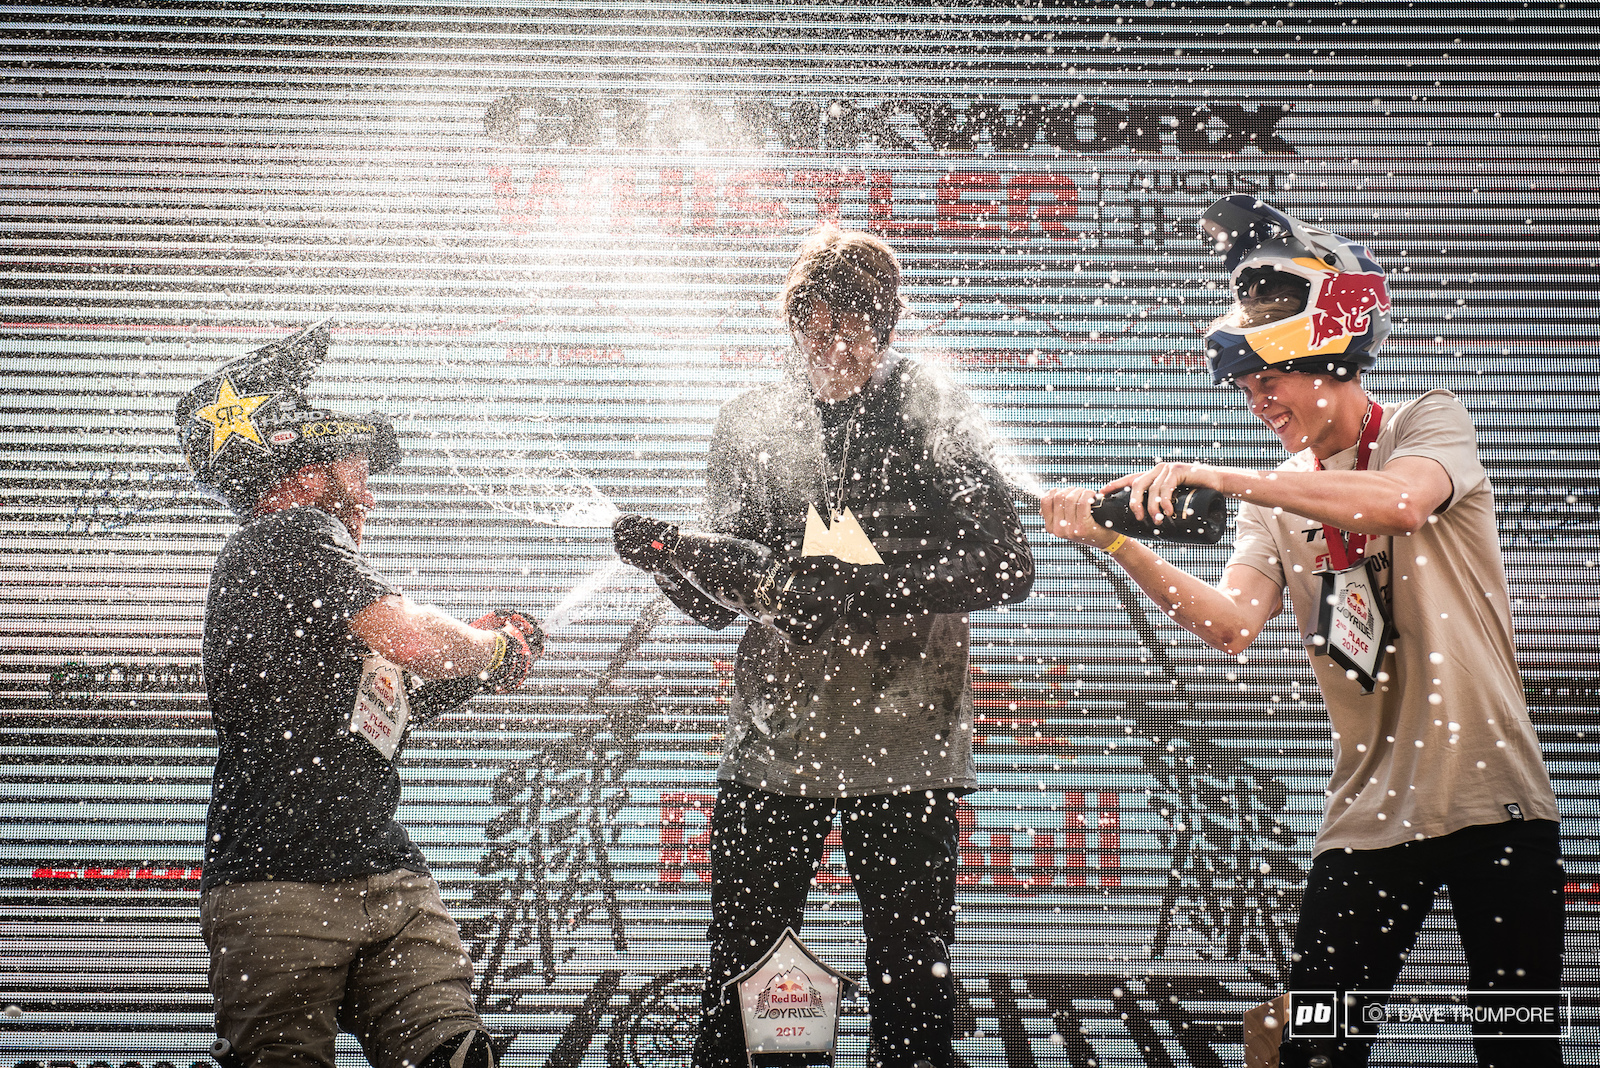 The final champagne shower of Crankworx courtesy of Brandon Semenuk Emil Johansson and Ryan Nyquist.